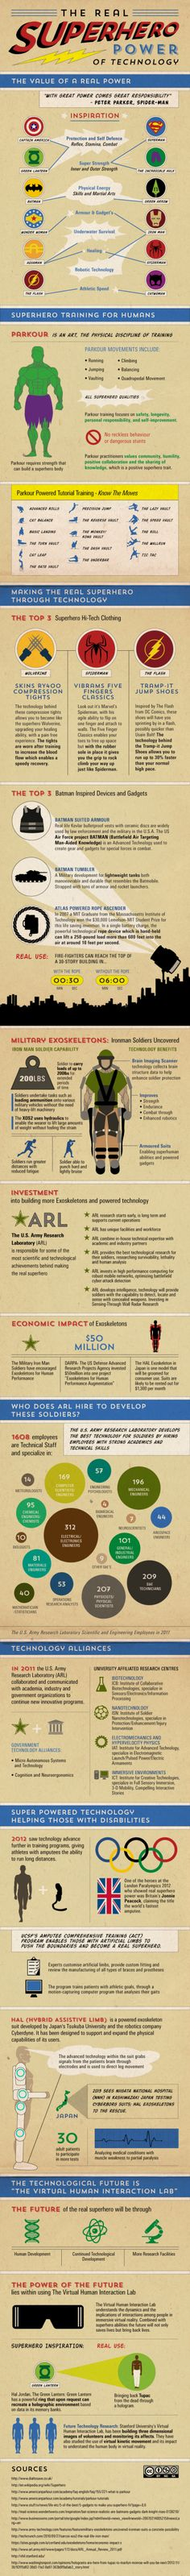 The Real Superhero Power of Technology Infographic